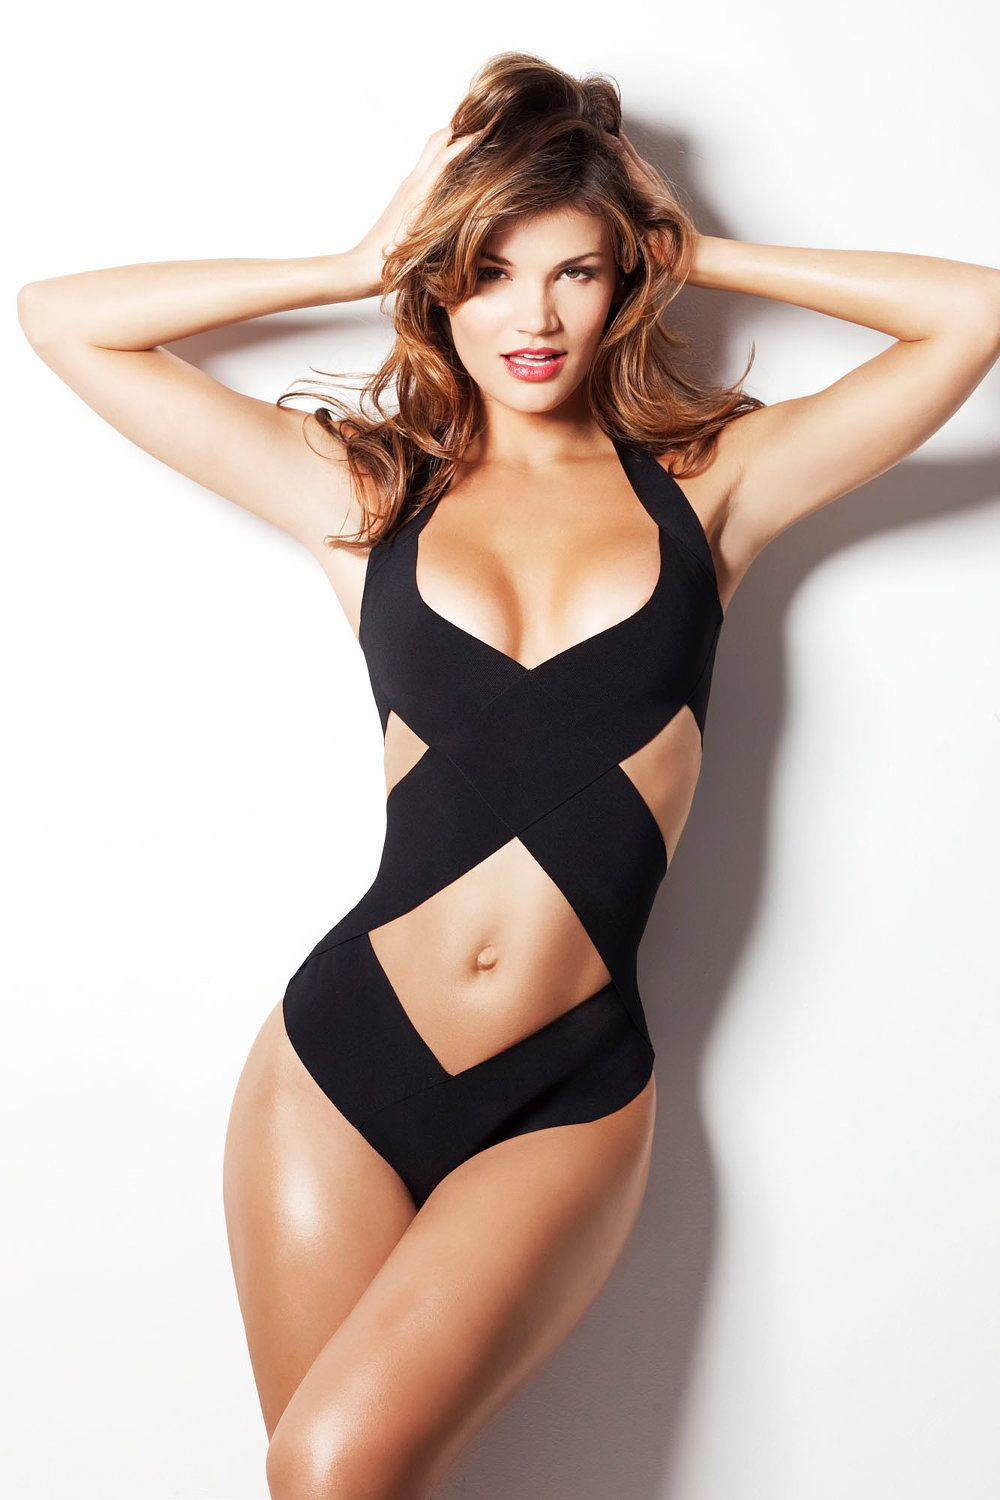 52670480c5051 Bandage swimsuit  bathing suit as seen in GQ